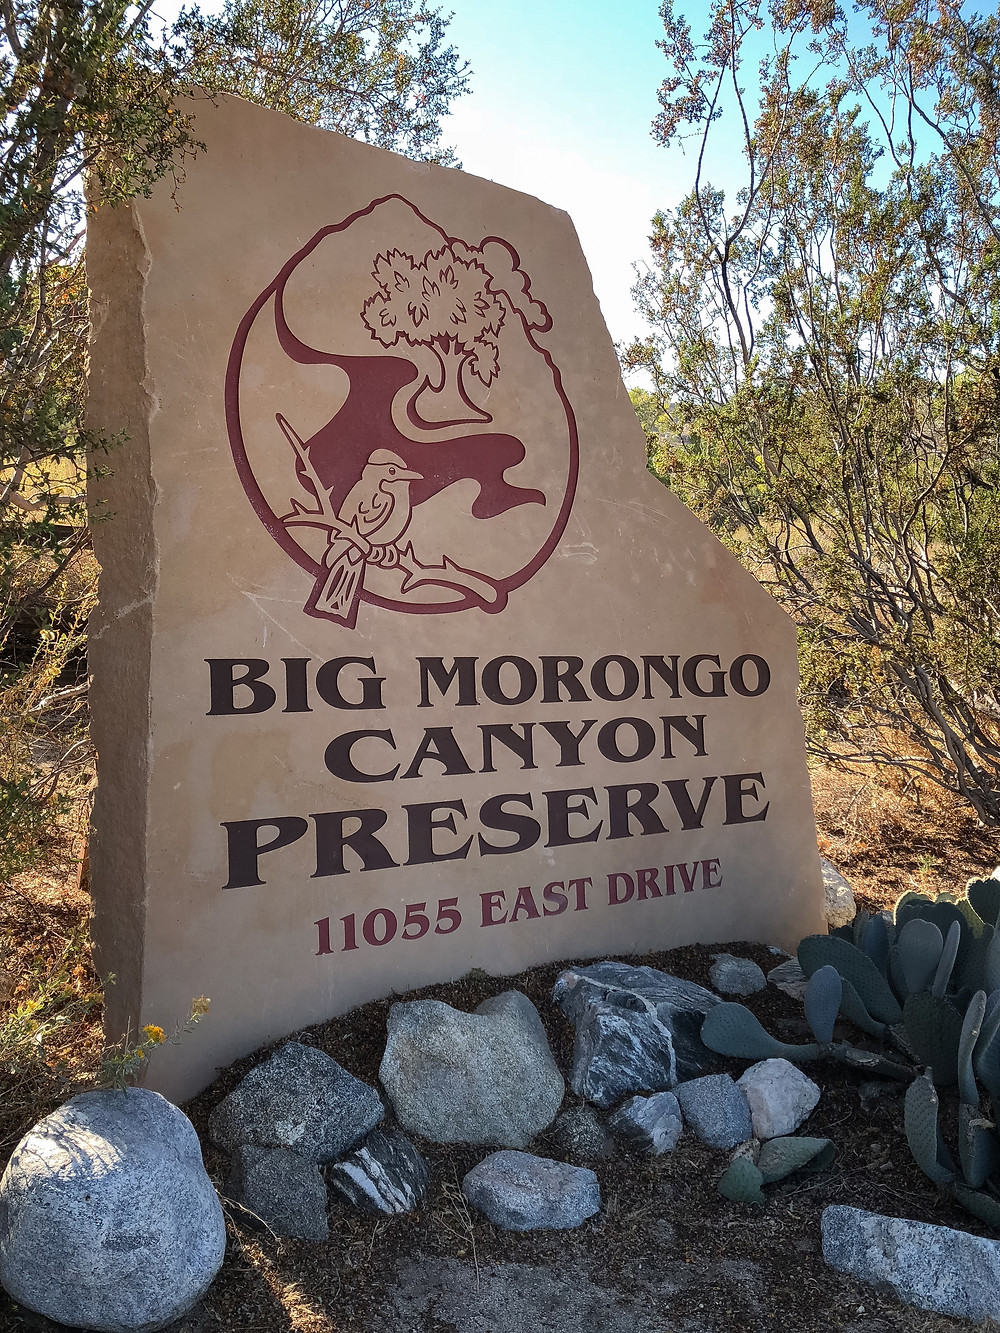 Entrance monument for Big Morongo Canyon Preserve